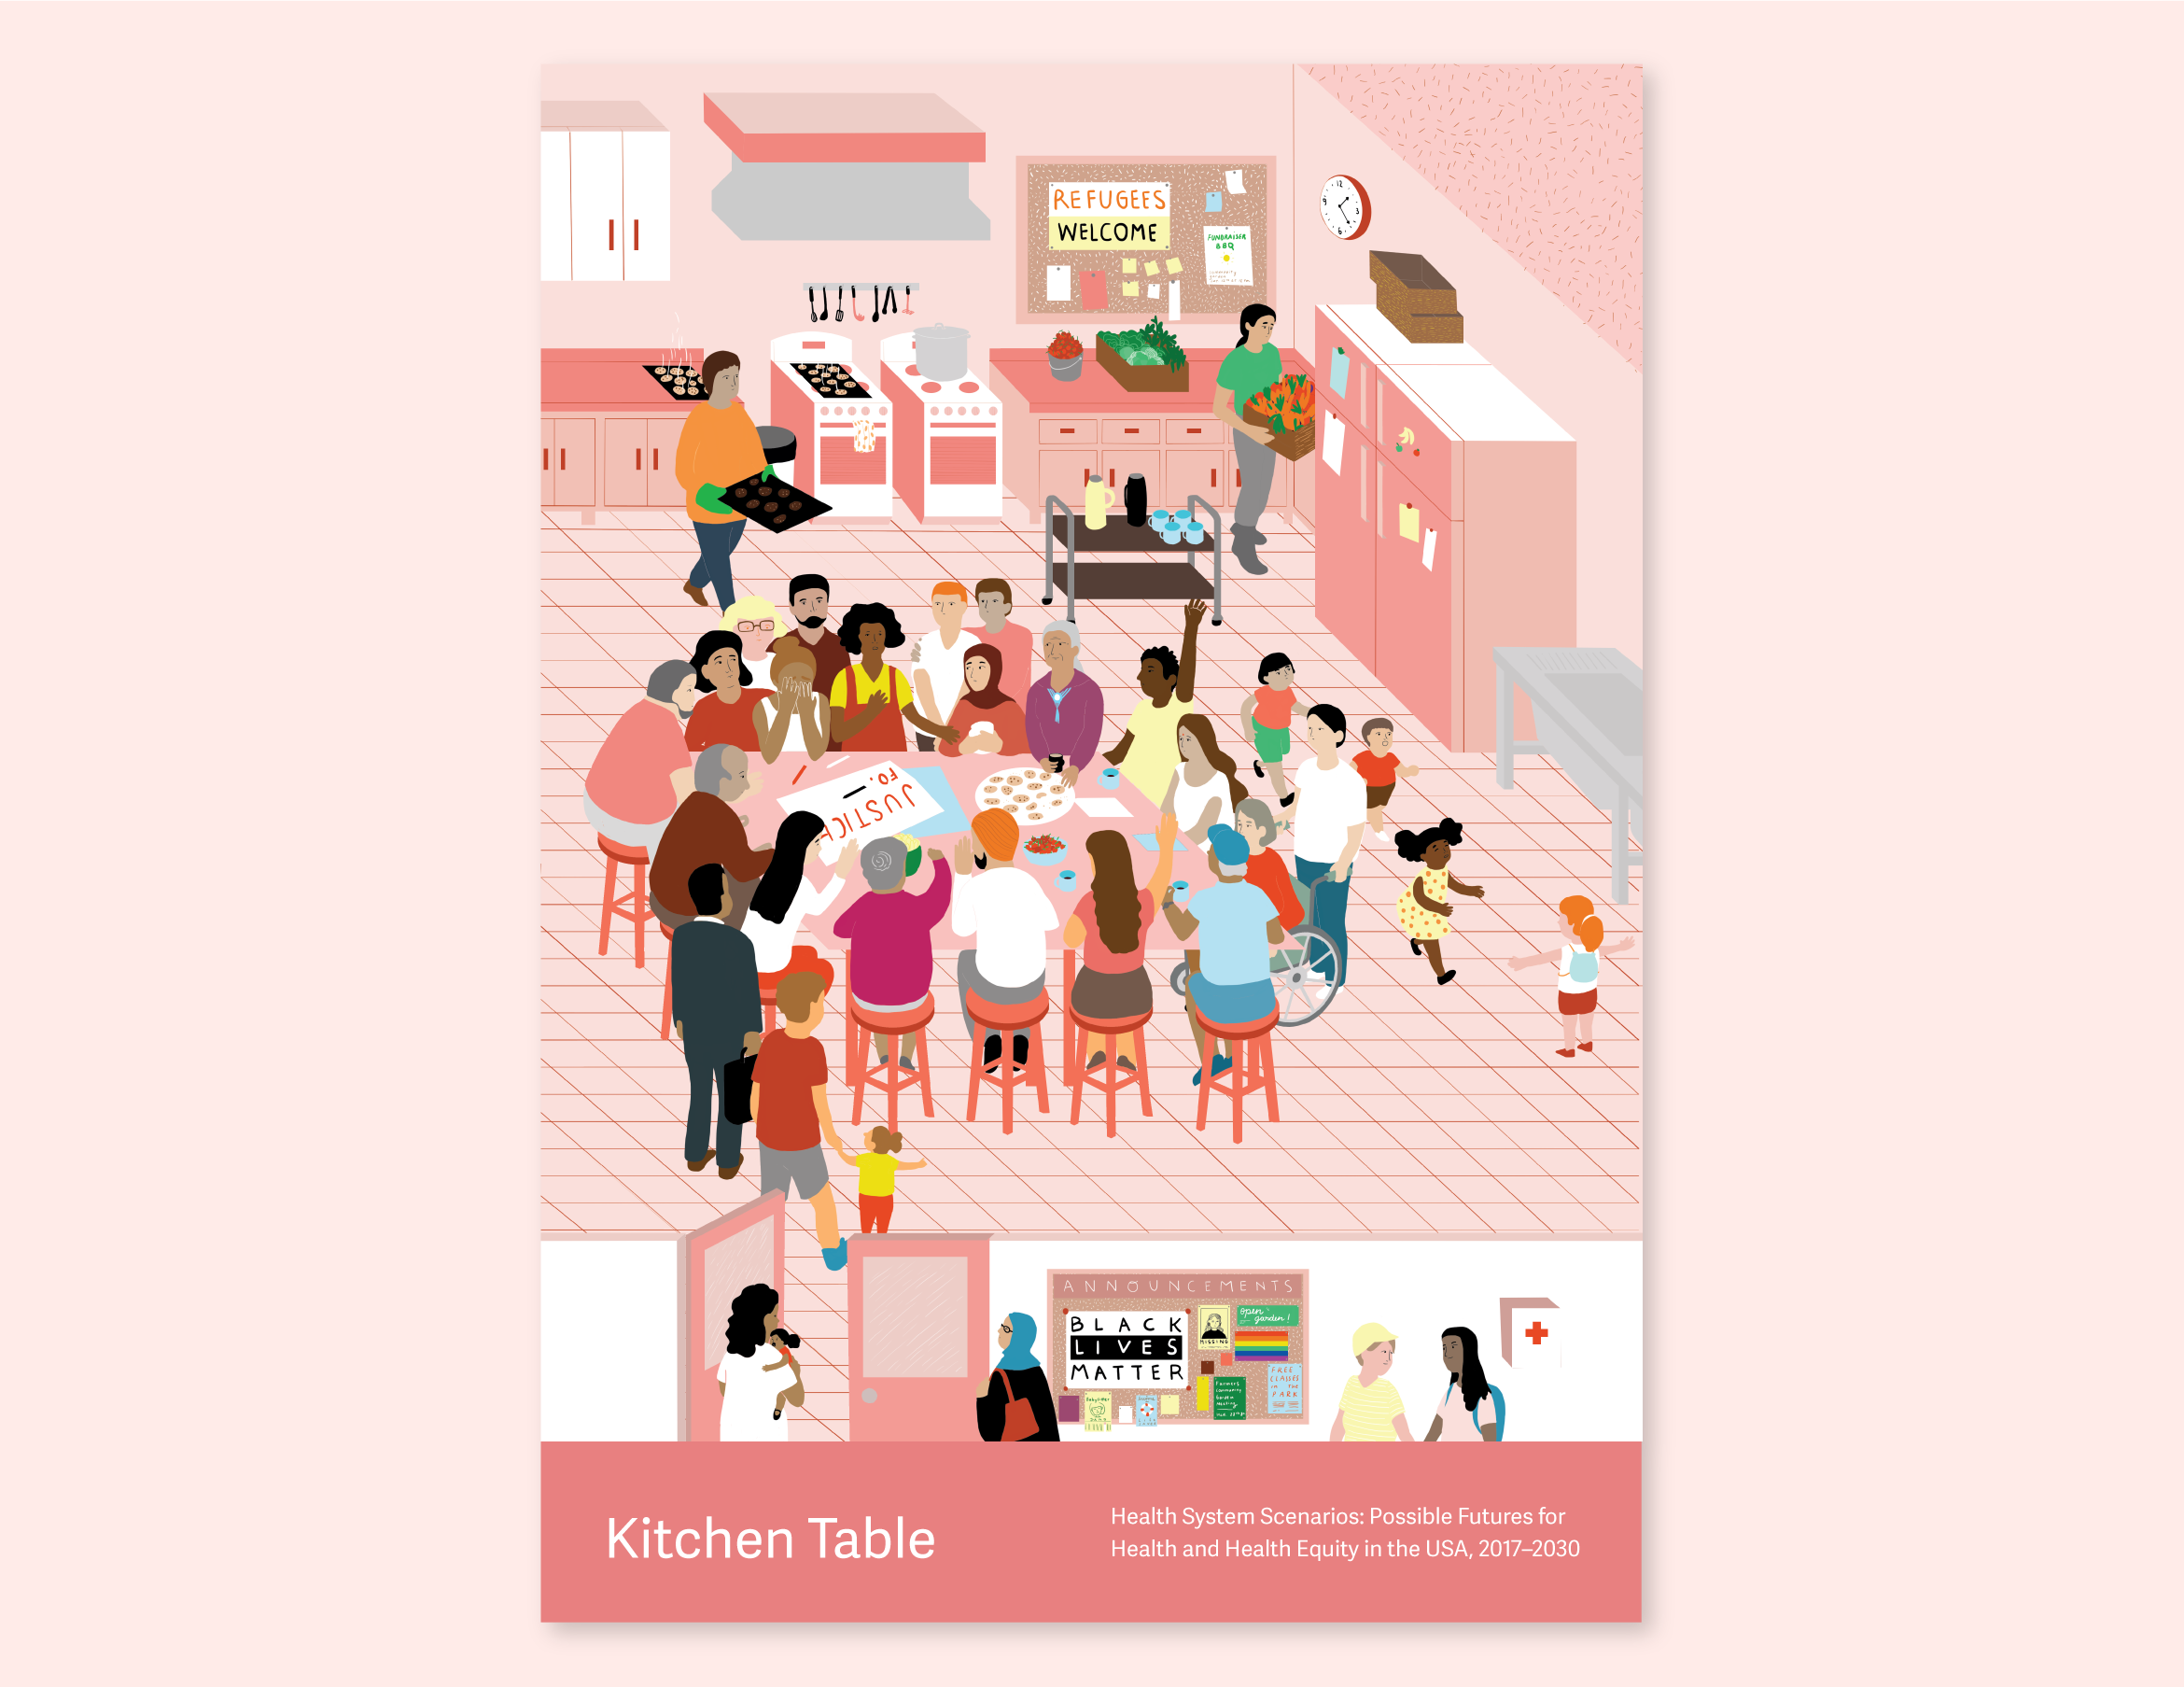 Illustration that represents the Kitchen Table.